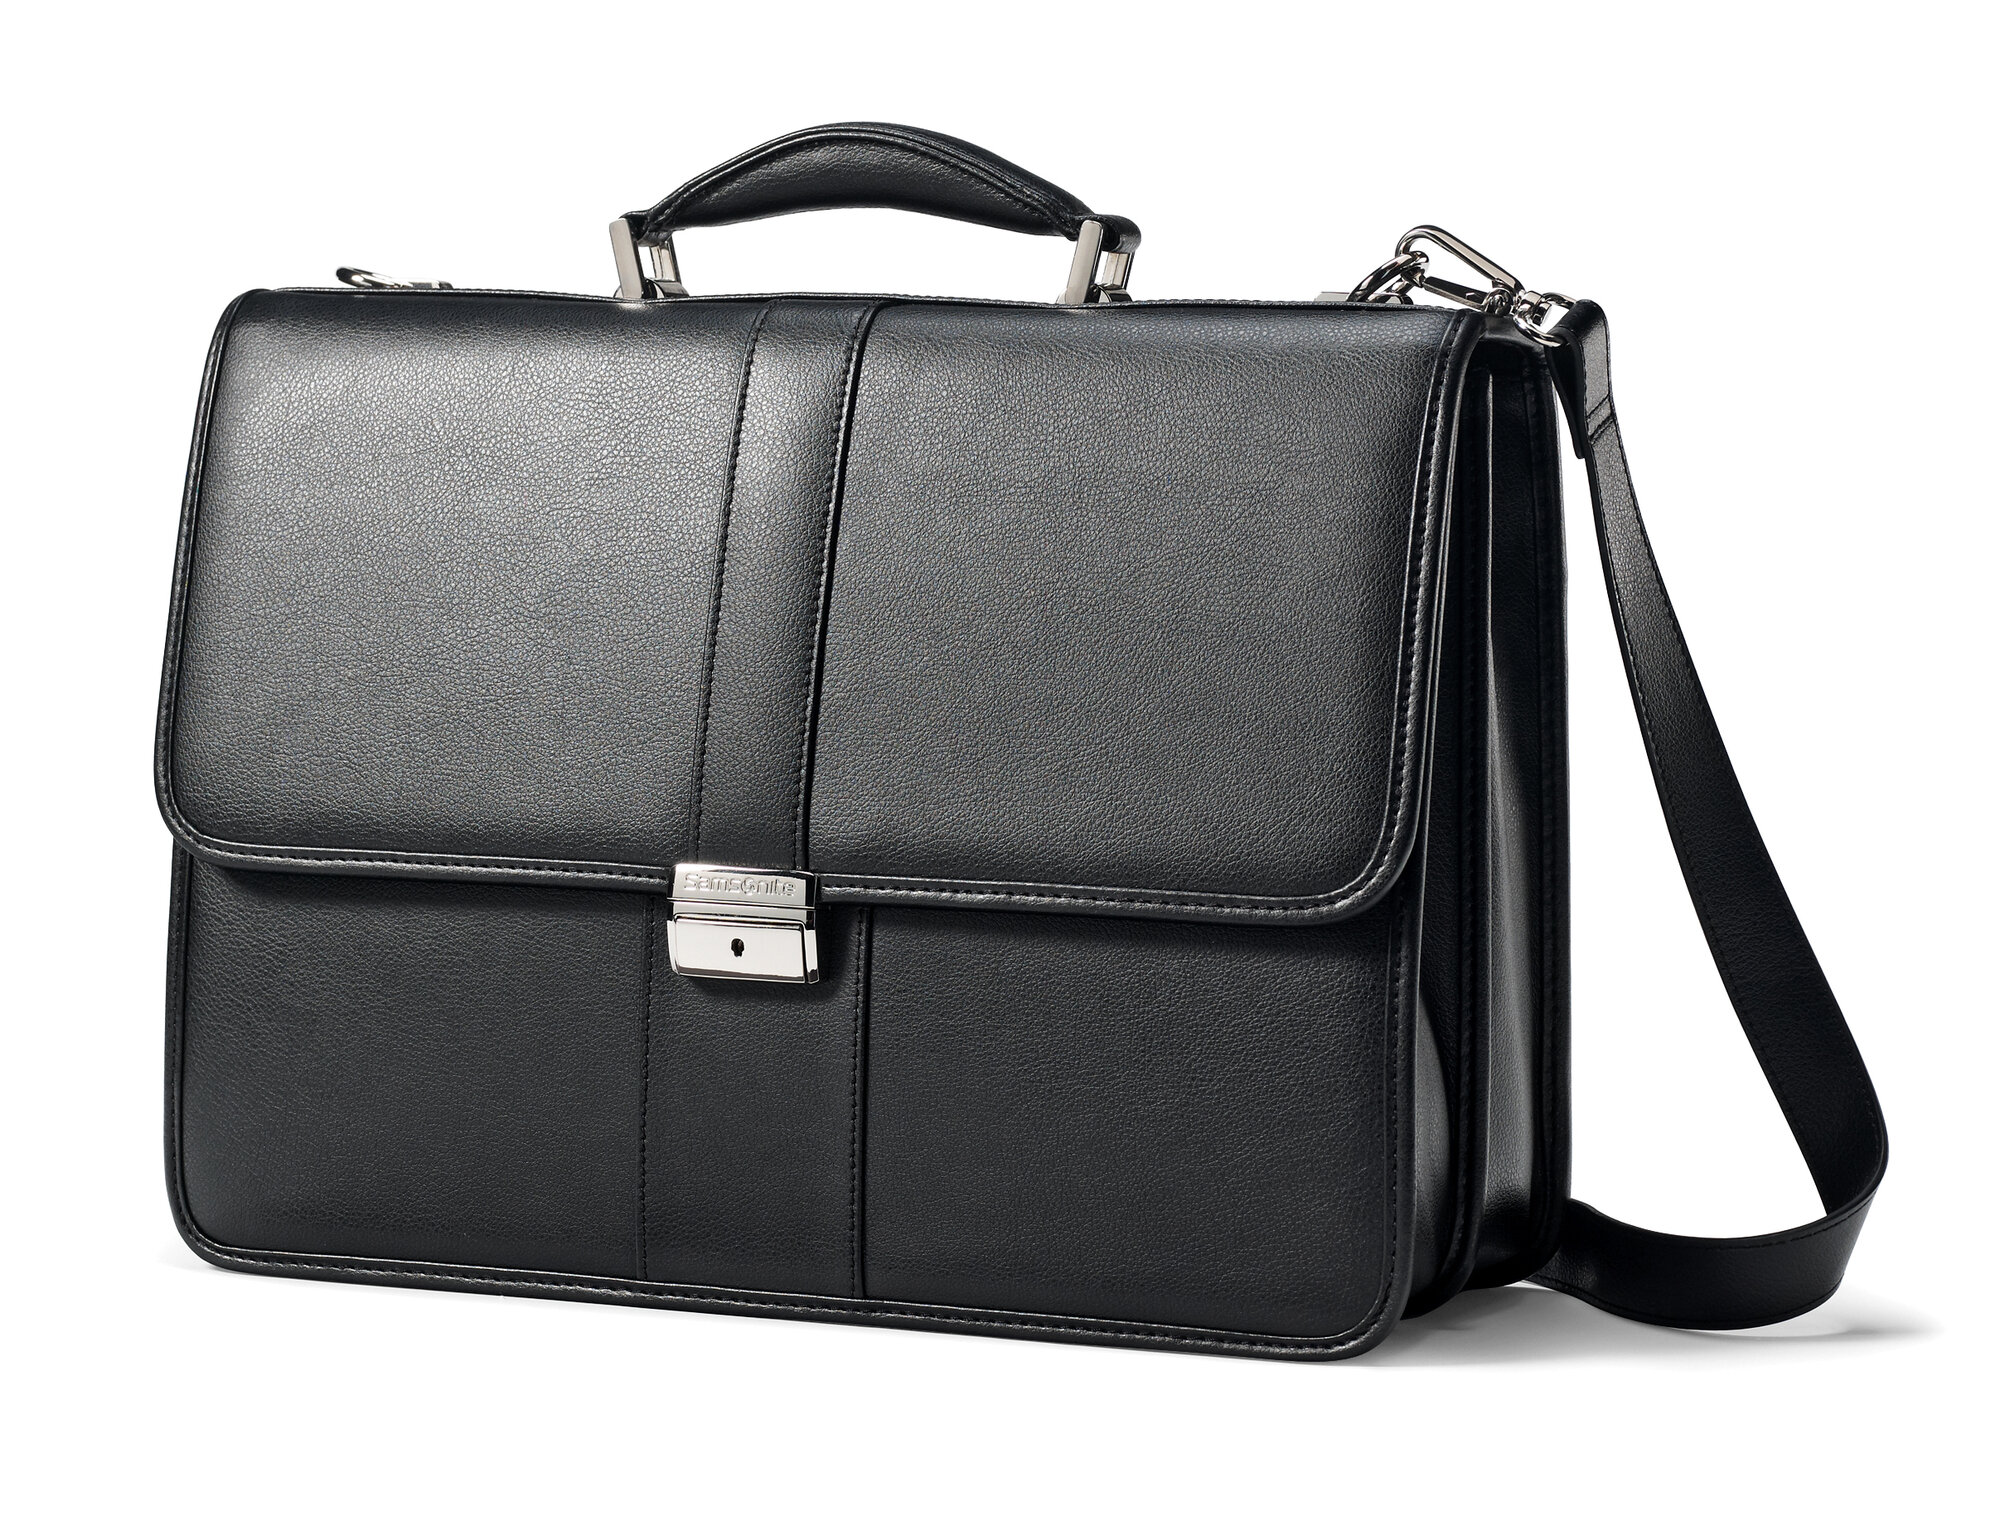 Briefcases & Portfolios for Men & Women. Travel to work both lightly and stylishly with our collection of men's and women's briefcases and portfolios.